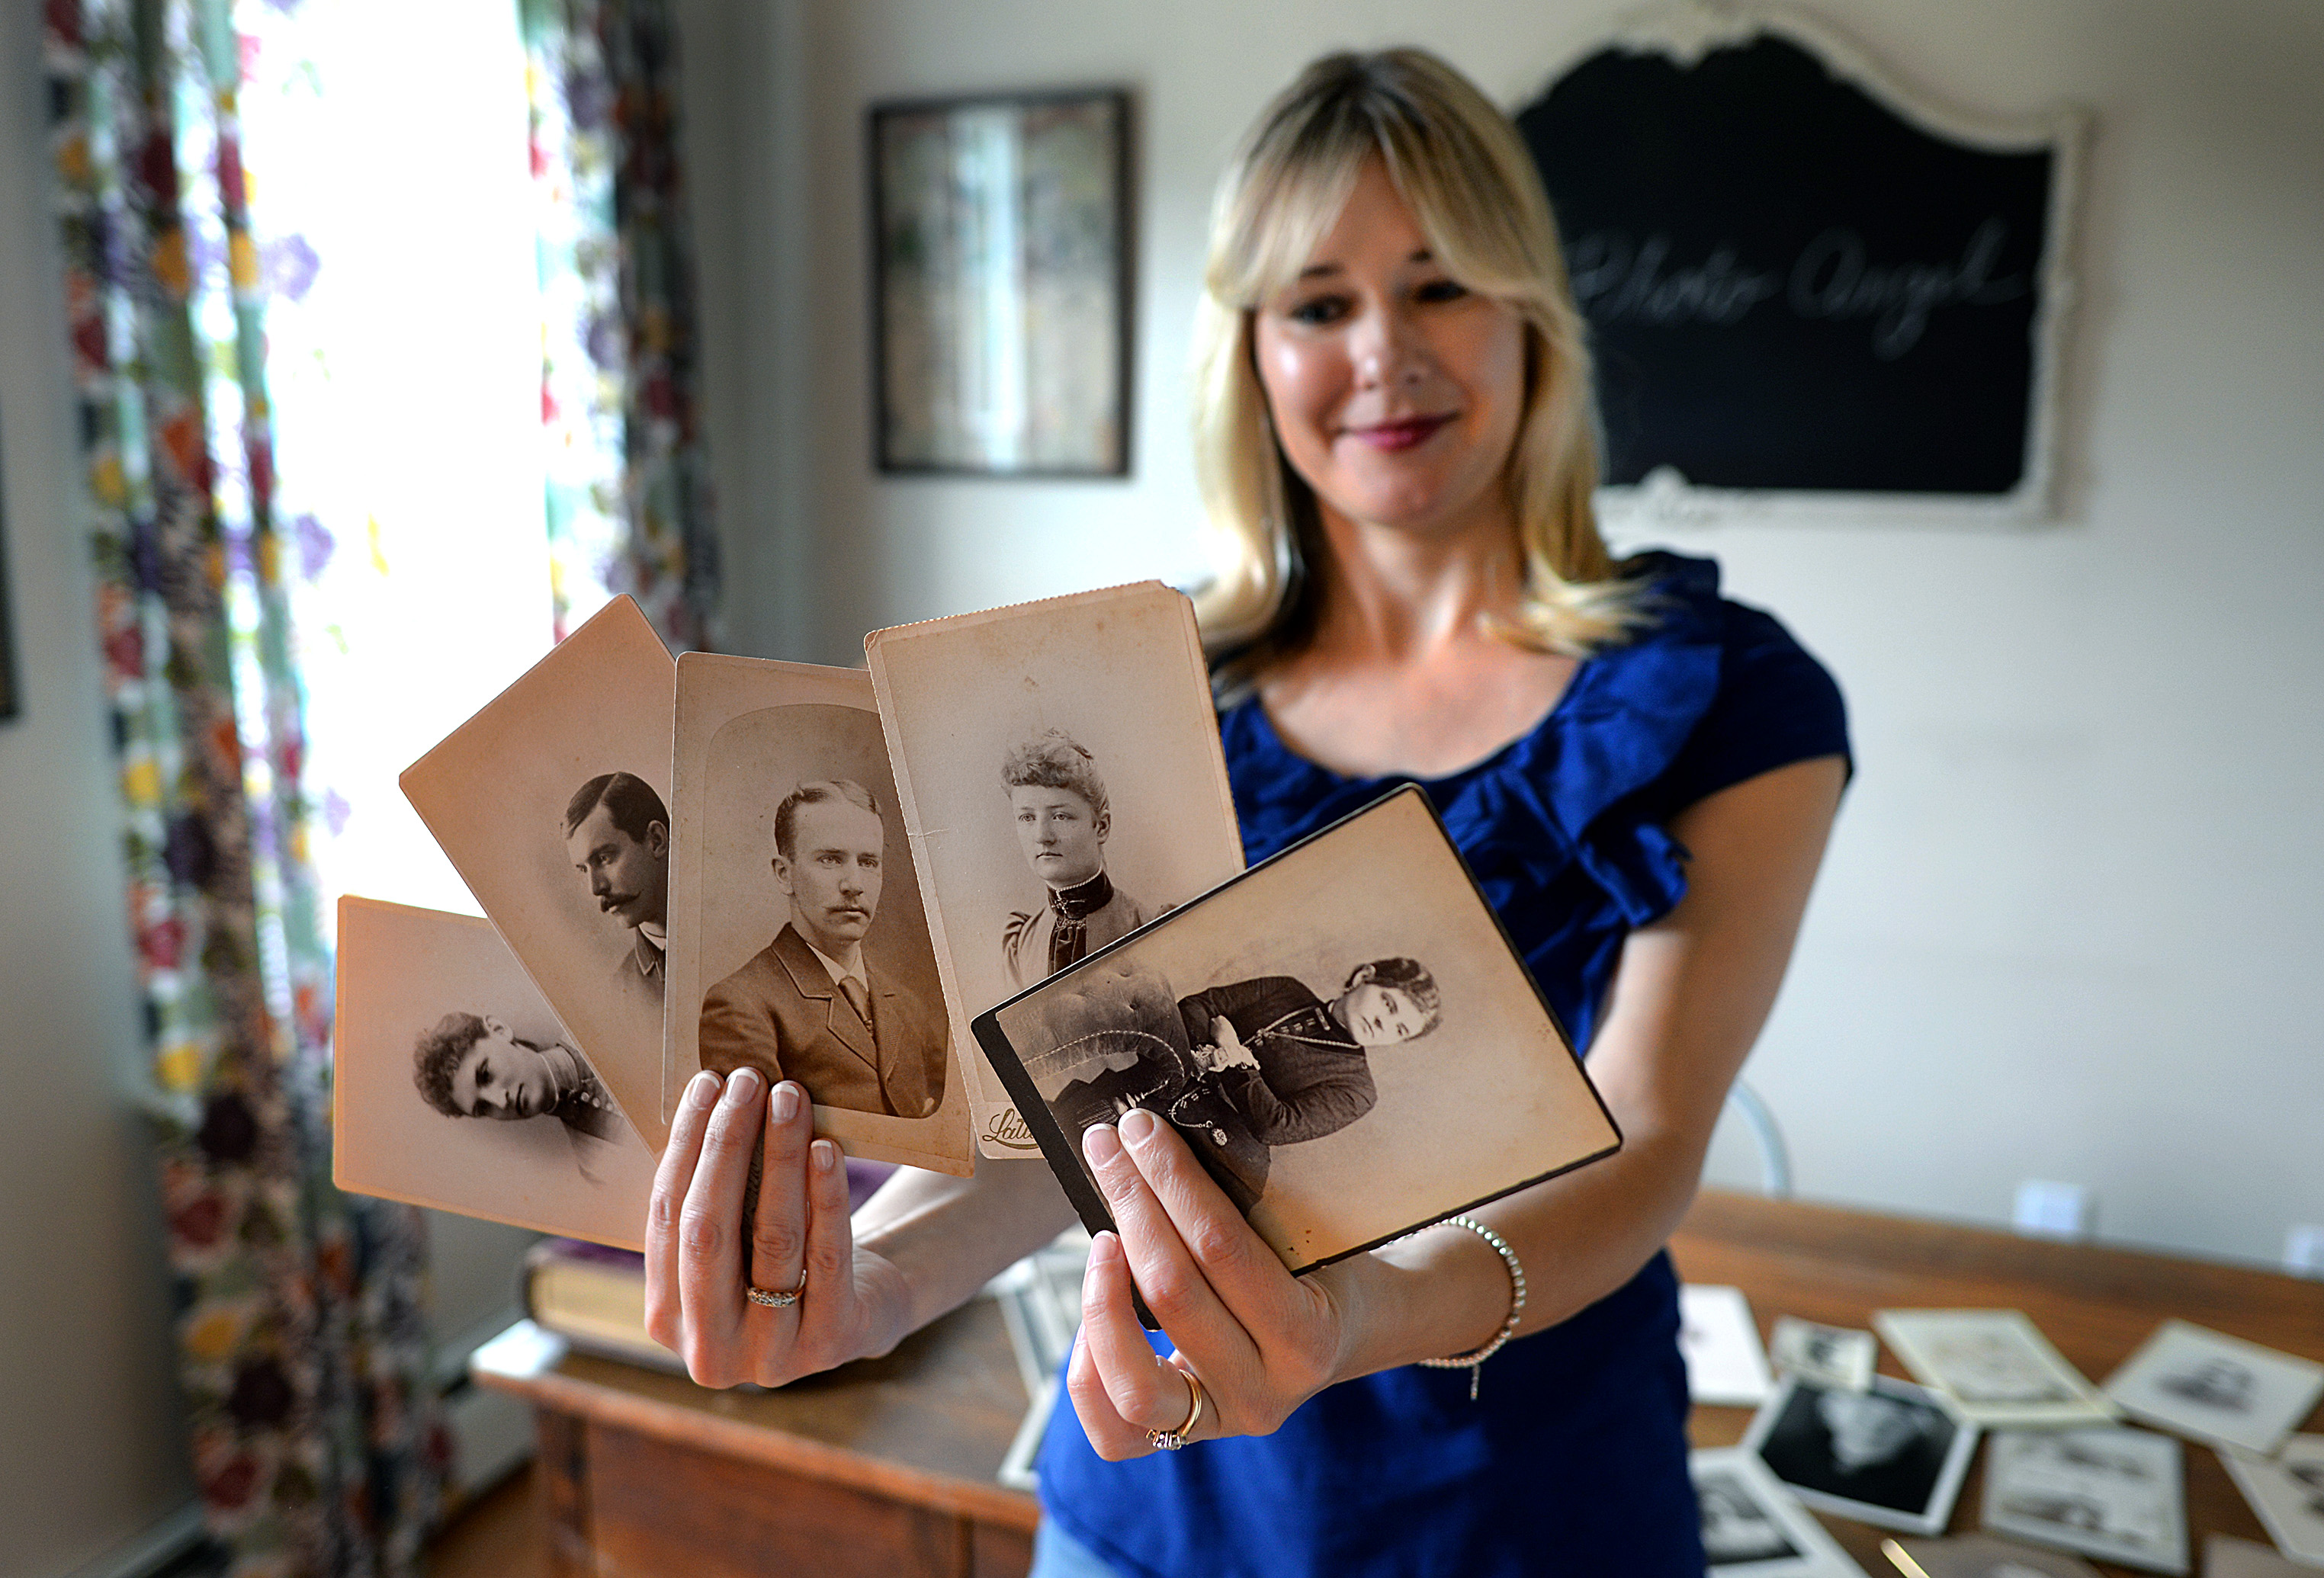 While Kate Kelley's hobby is new, her fascination with genealogy has endured forever.